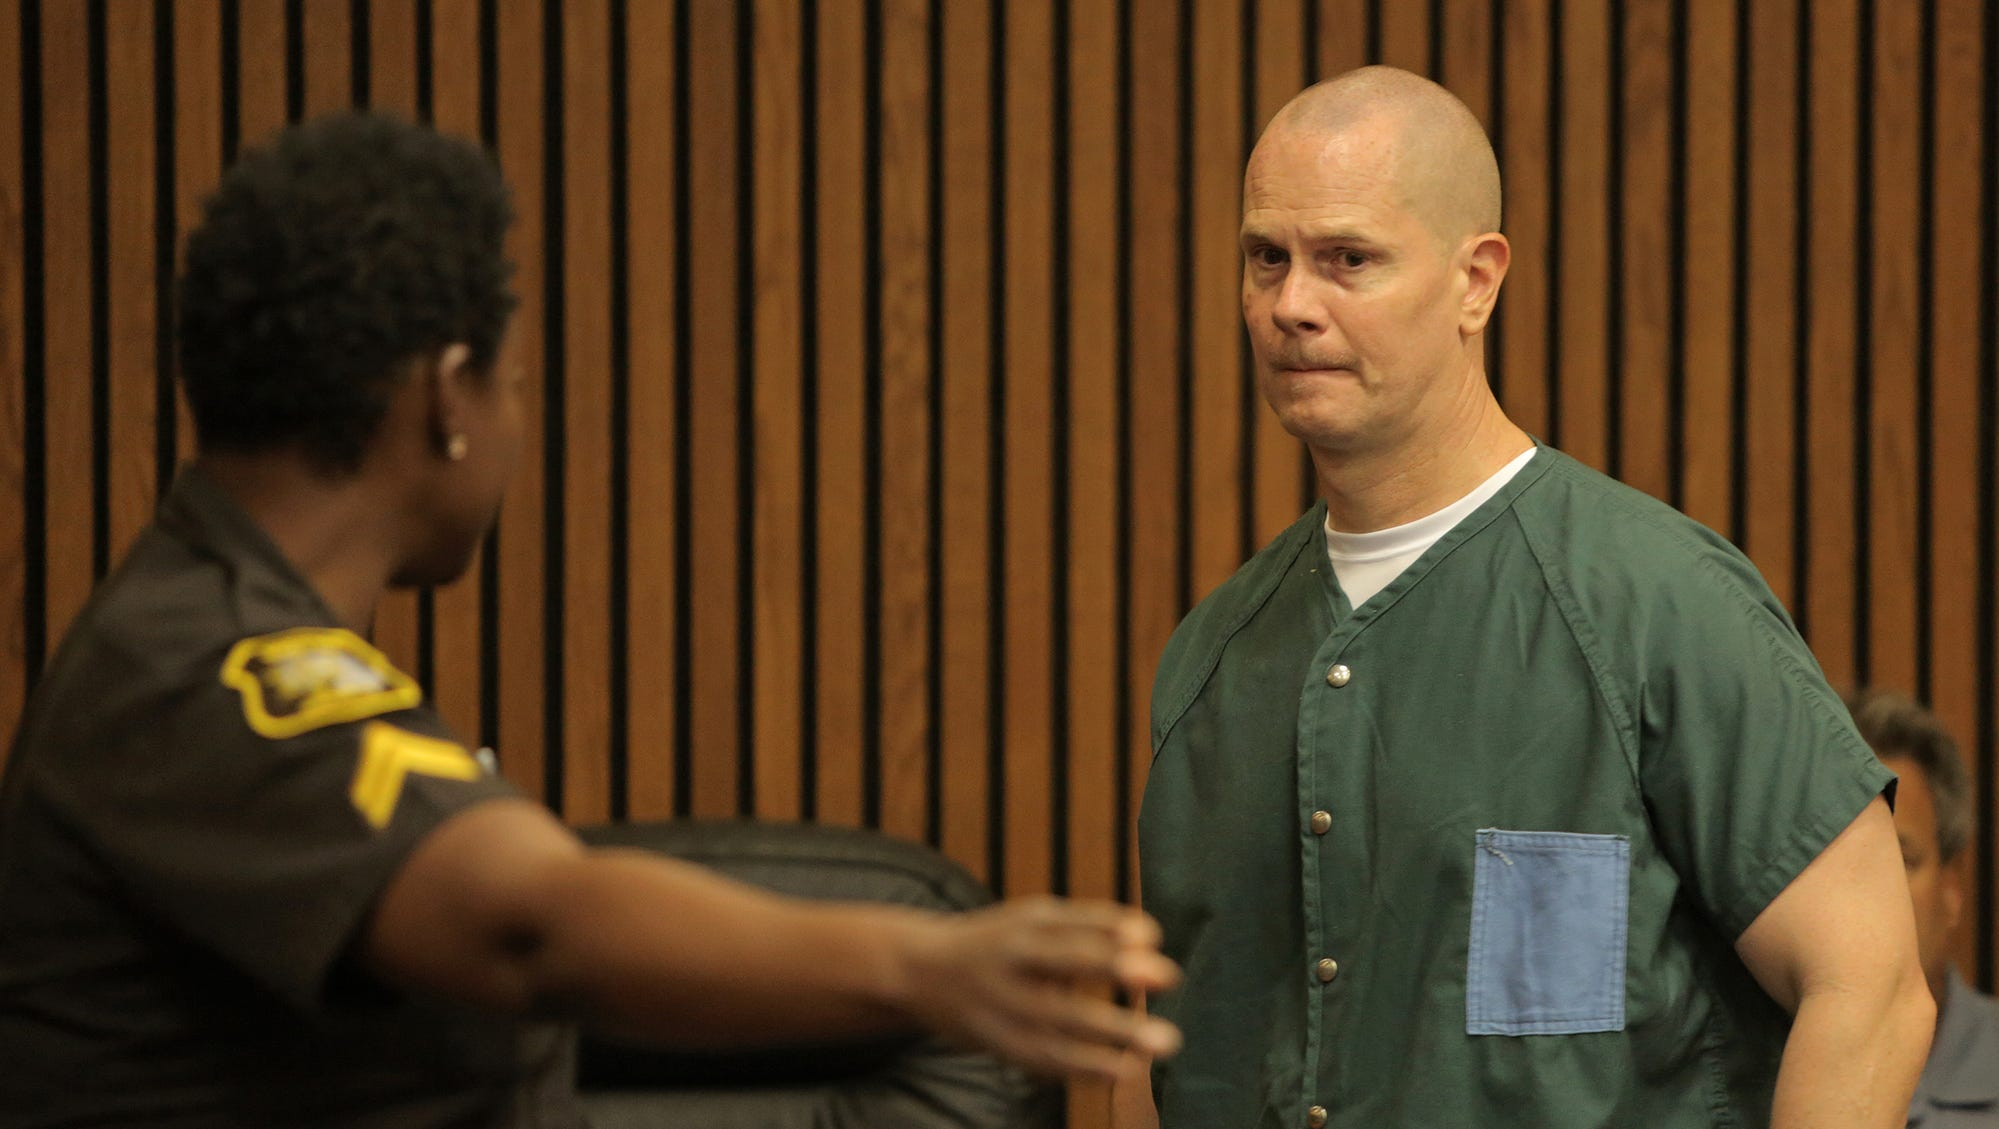 White Boy Rick Wershe Granted Parole But May Be In Prison For Years